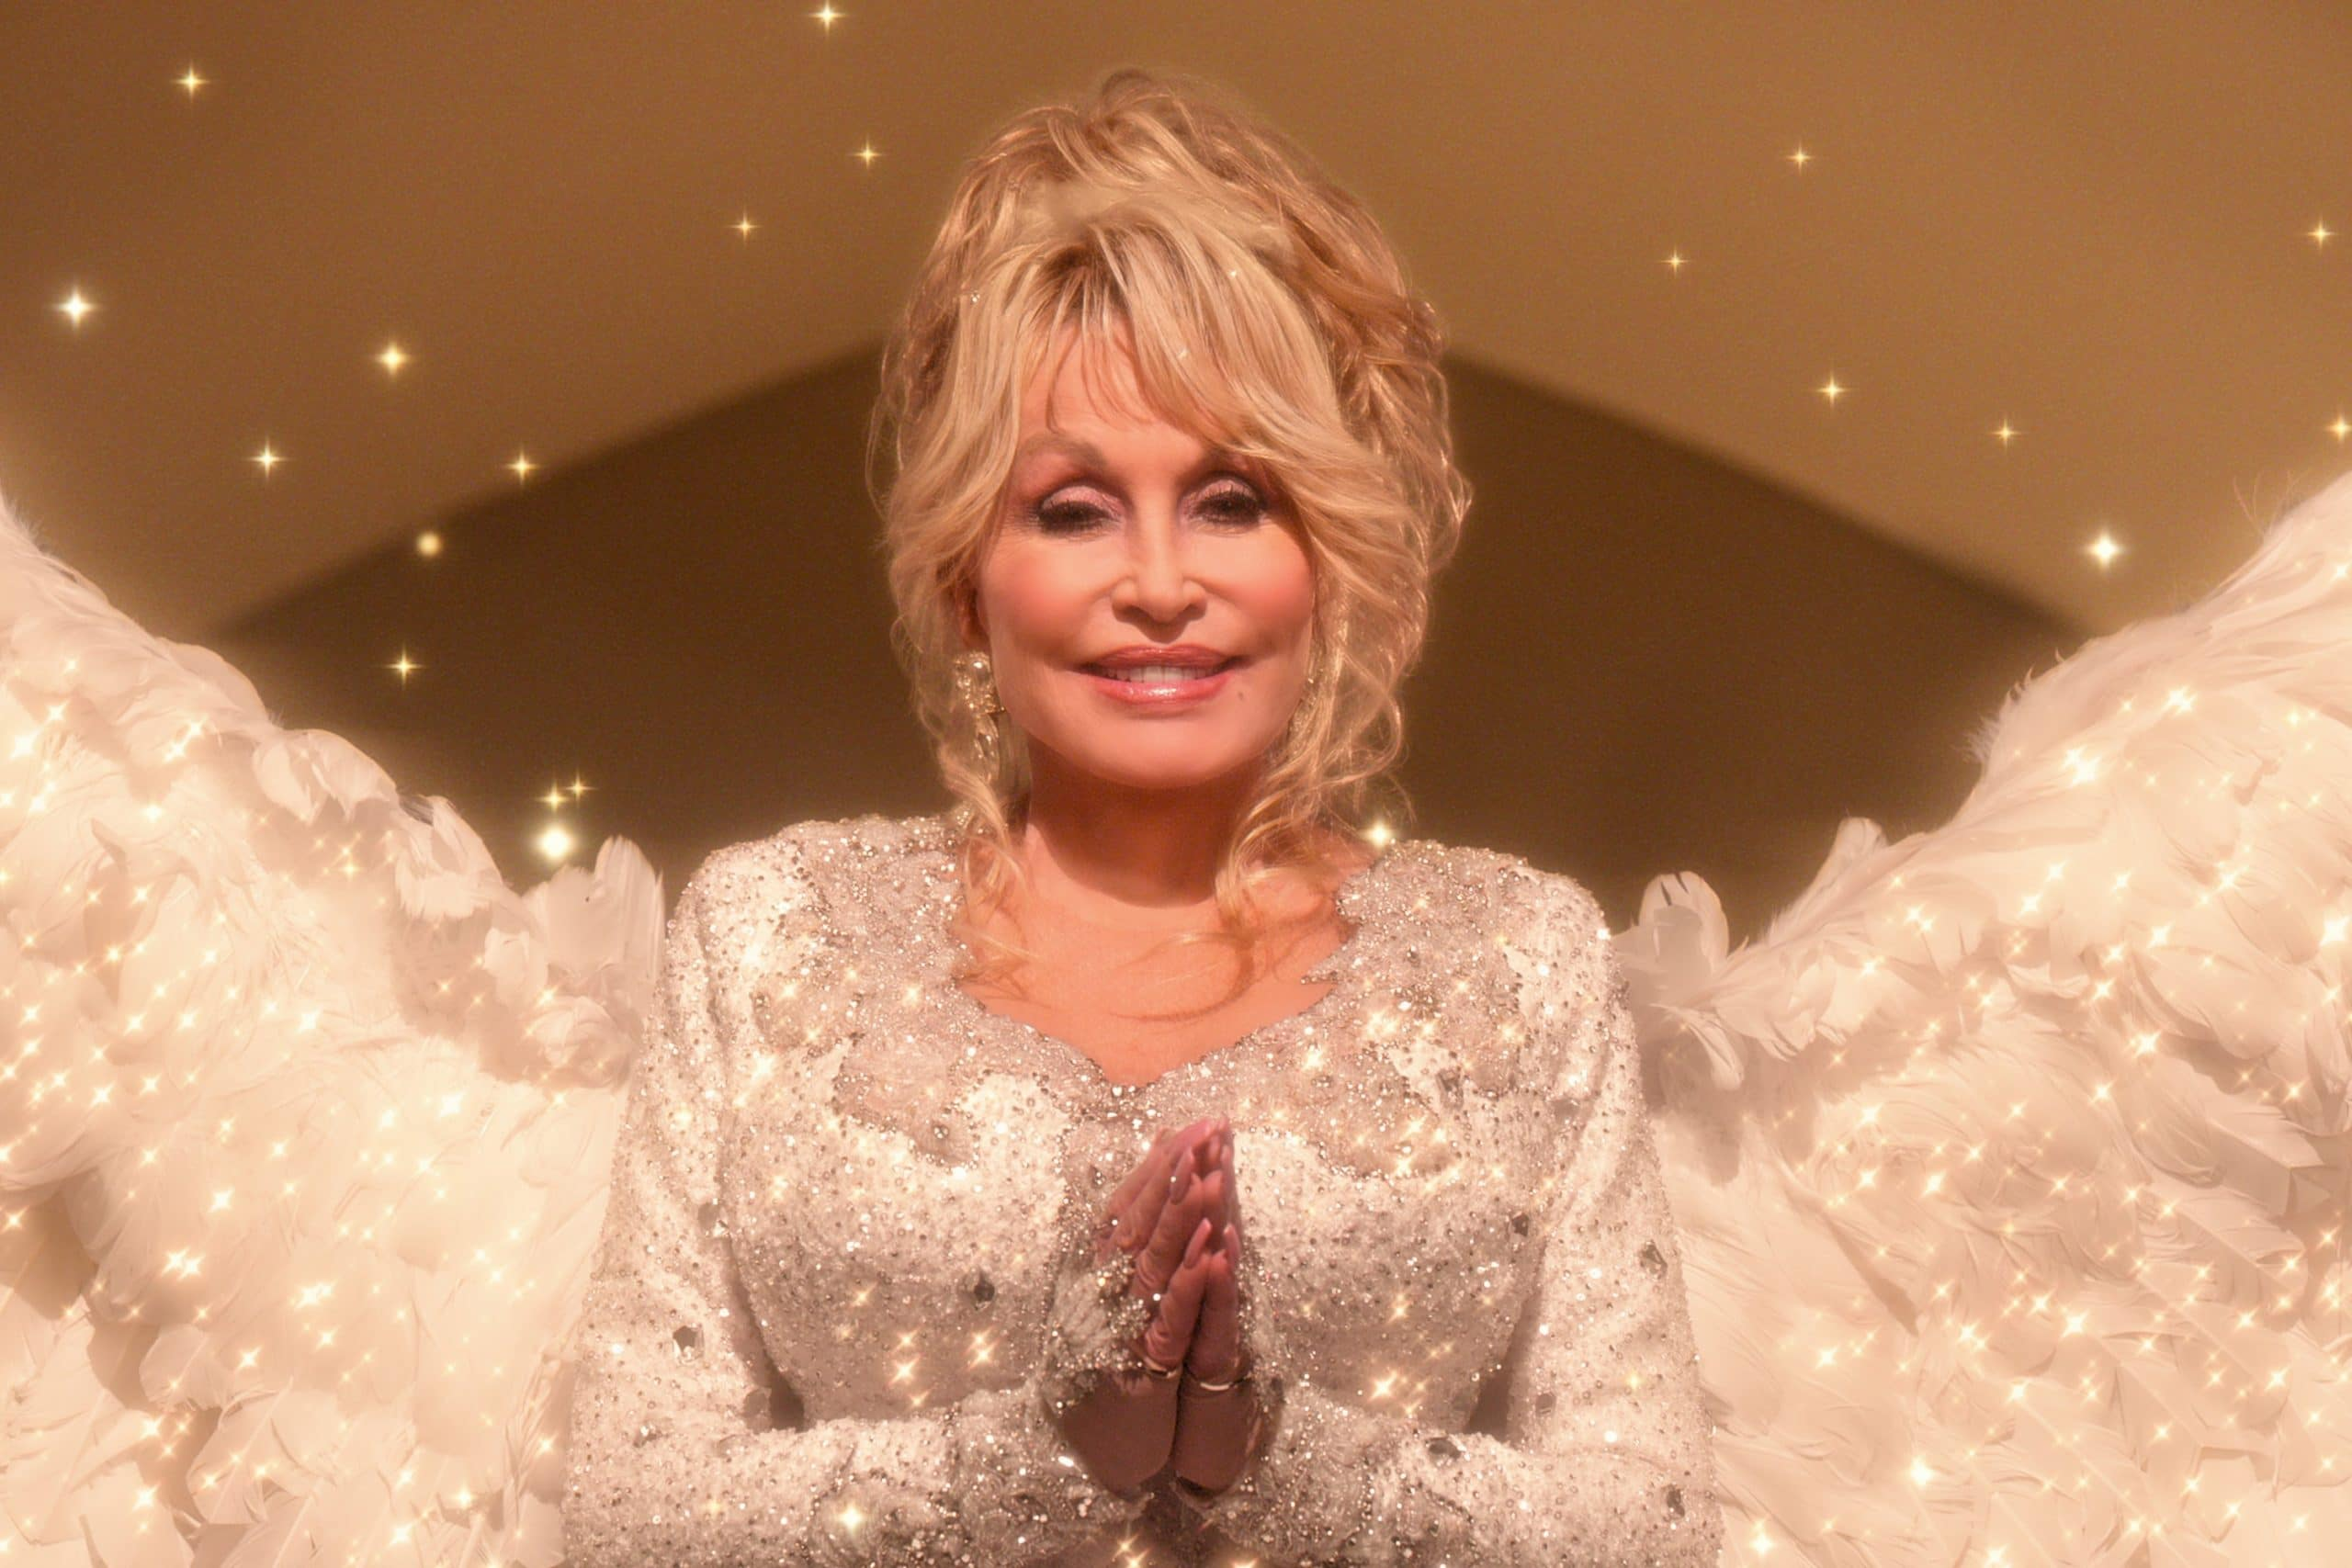 CHRISTMAS ON THE SQUARE, (aka DOLLY PARTON'S CHRISTMAS ON THE SQUARE), Dolly Parton